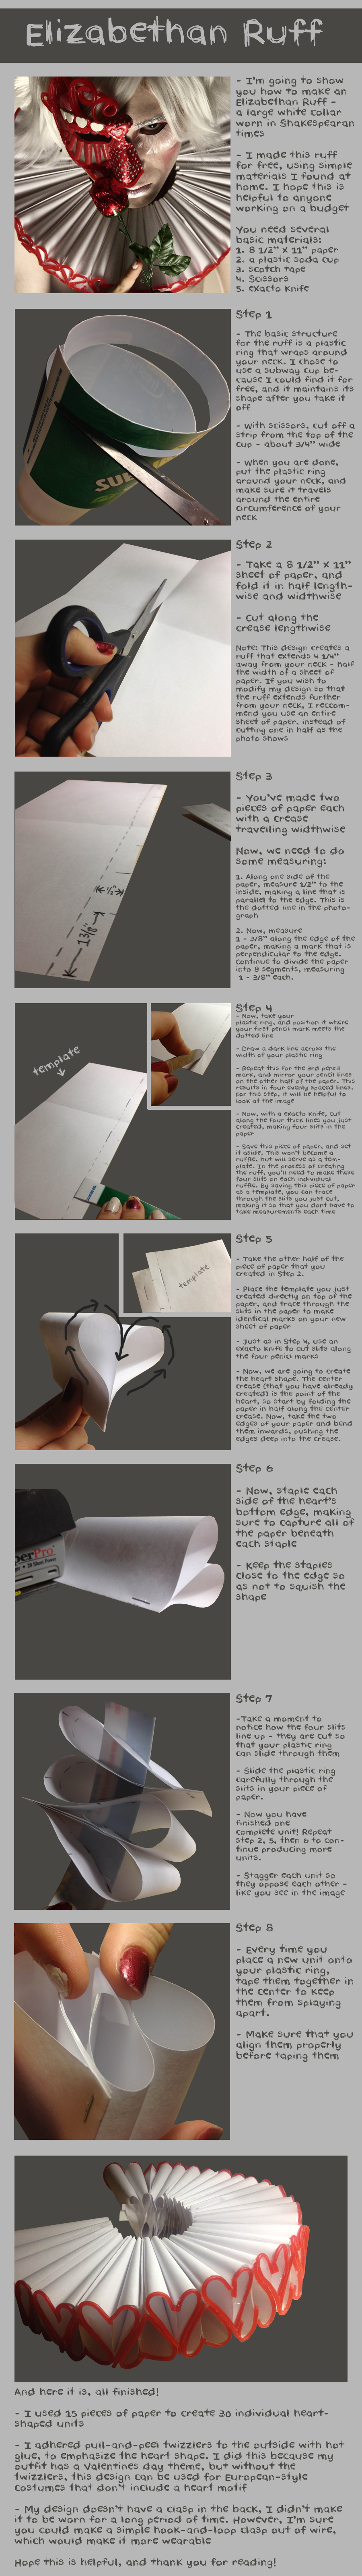 Elizabethan Ruff Tutorial by Bllacksheep